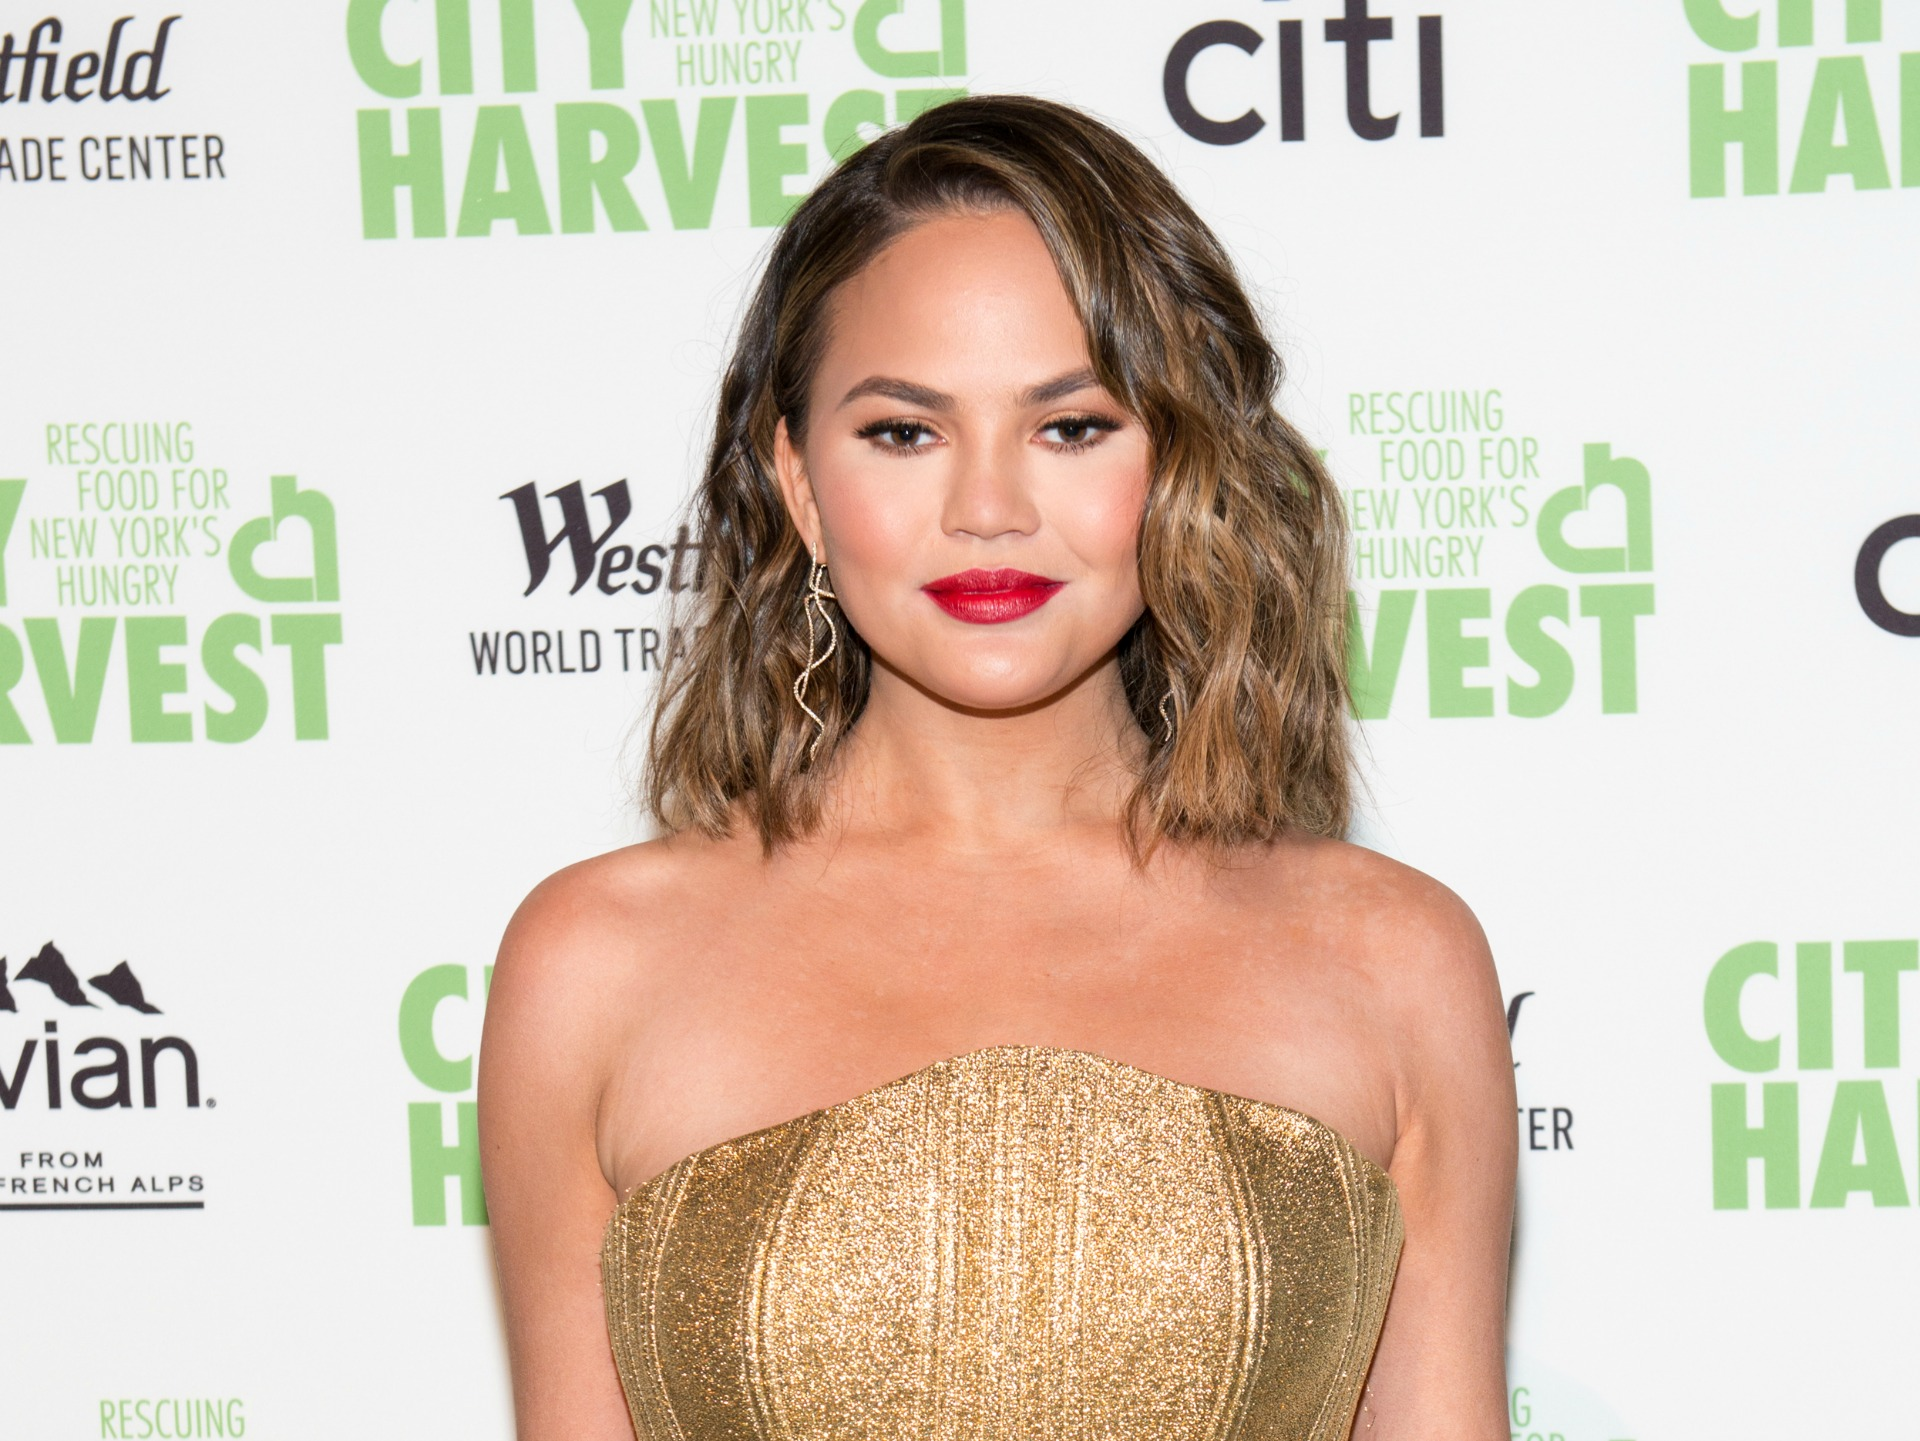 Chrissy Teigen Keeps It Real By Admitting Everything About Her Is